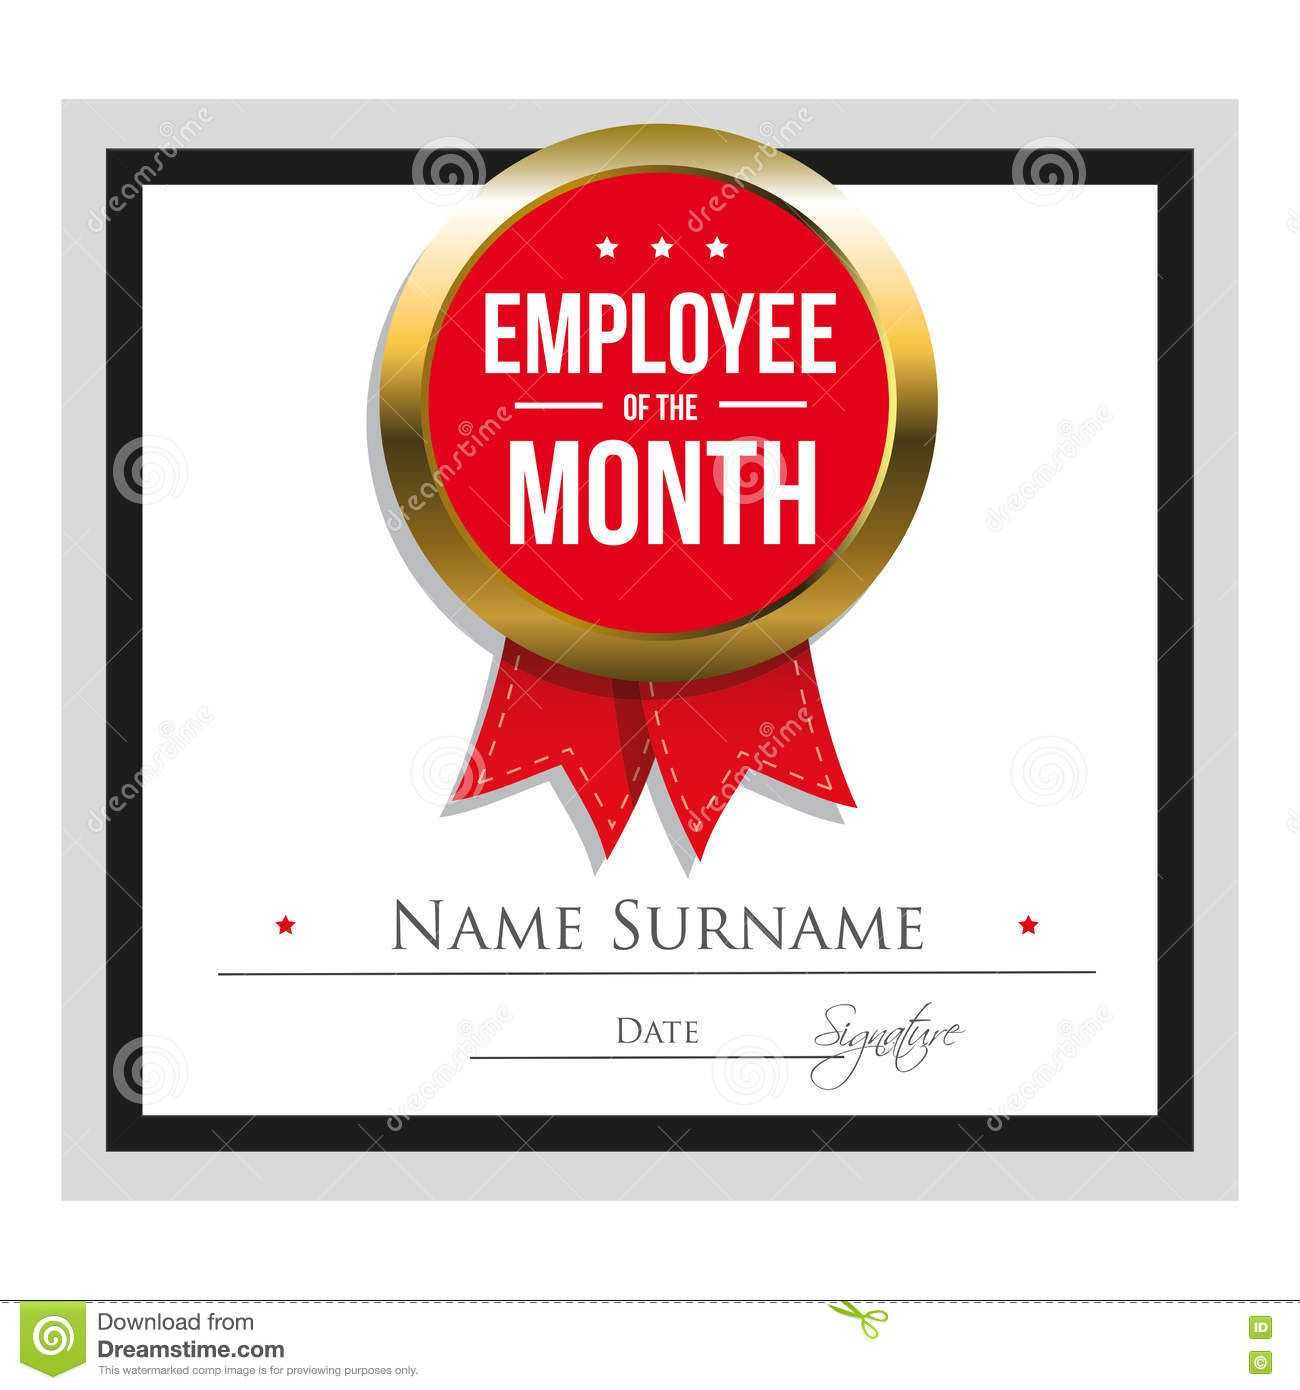 Employee Award Certificate Template Free Templates Design Intended For Manager Of The Month Certificate Template